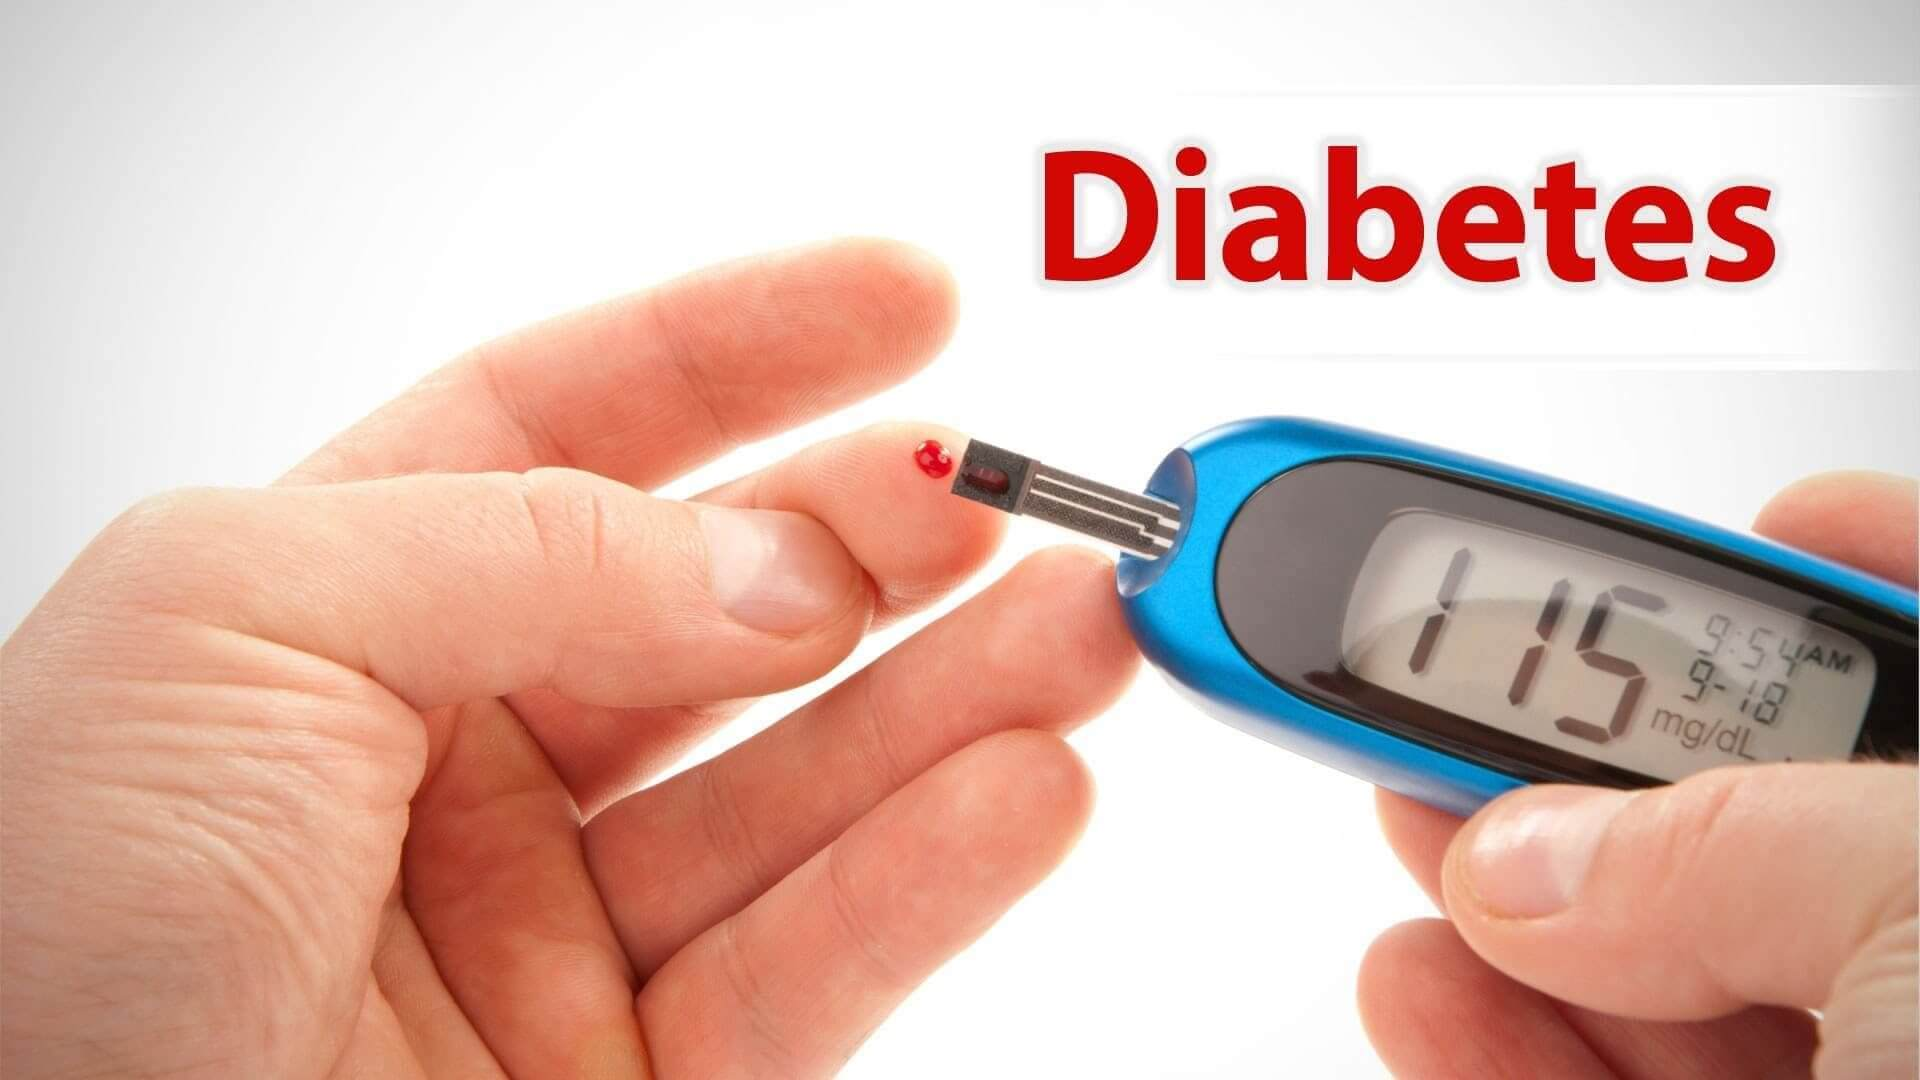 The main signs of diabetes and its treatment